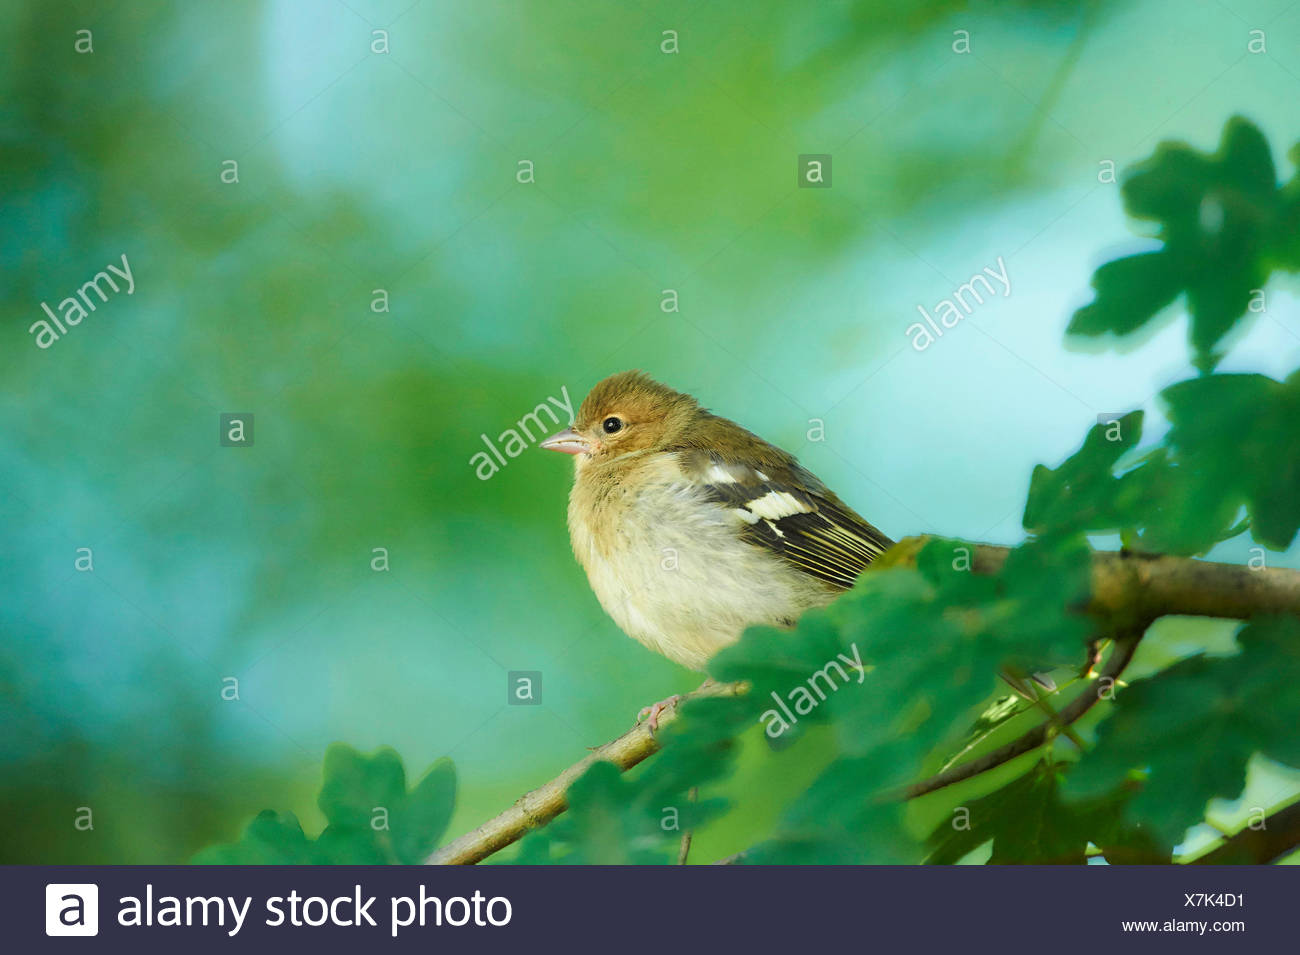 chaffinch (Fringilla coelebs), juvenile on a twig, Germany, Bavaria - Stock Image